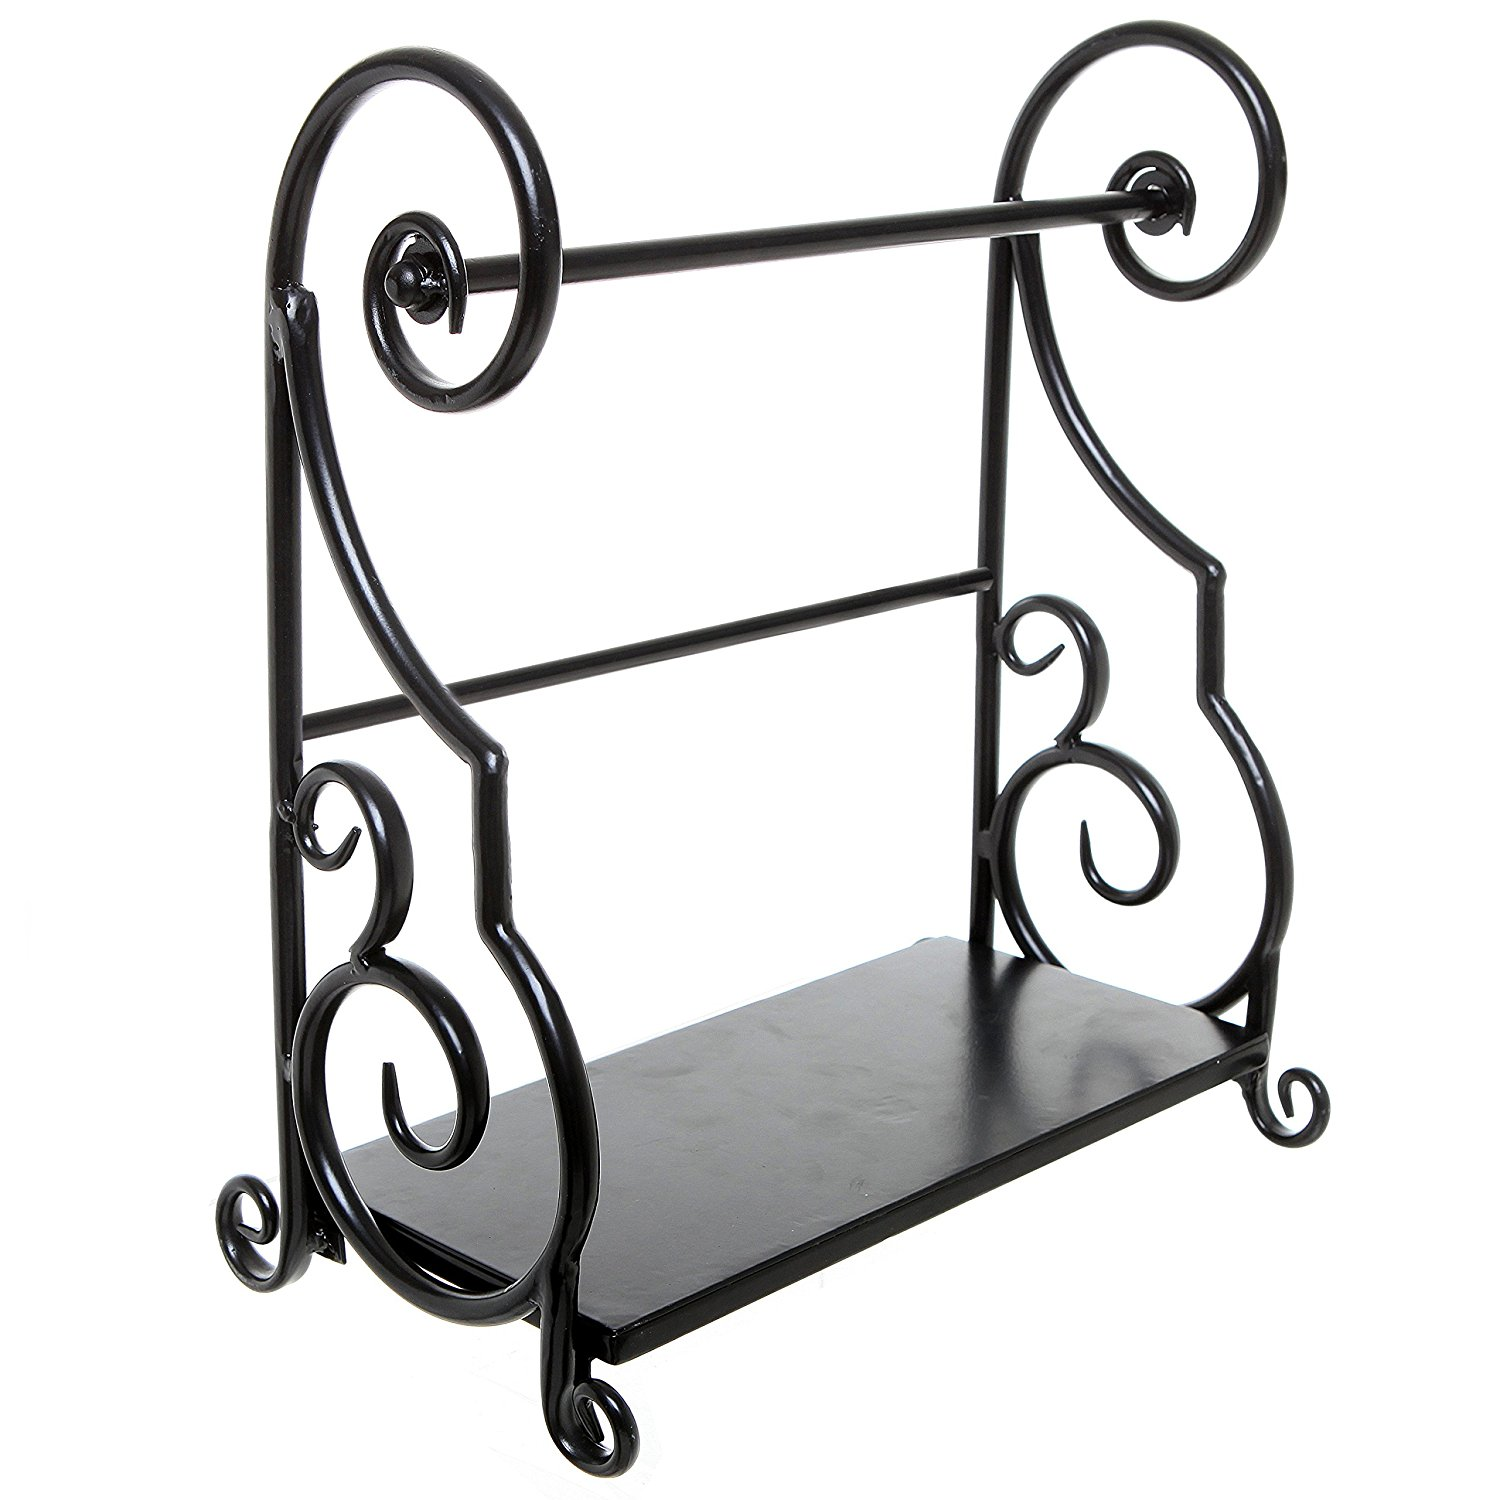 1500x1500 Decorative Black Metal Scrollwork Design Freestanding